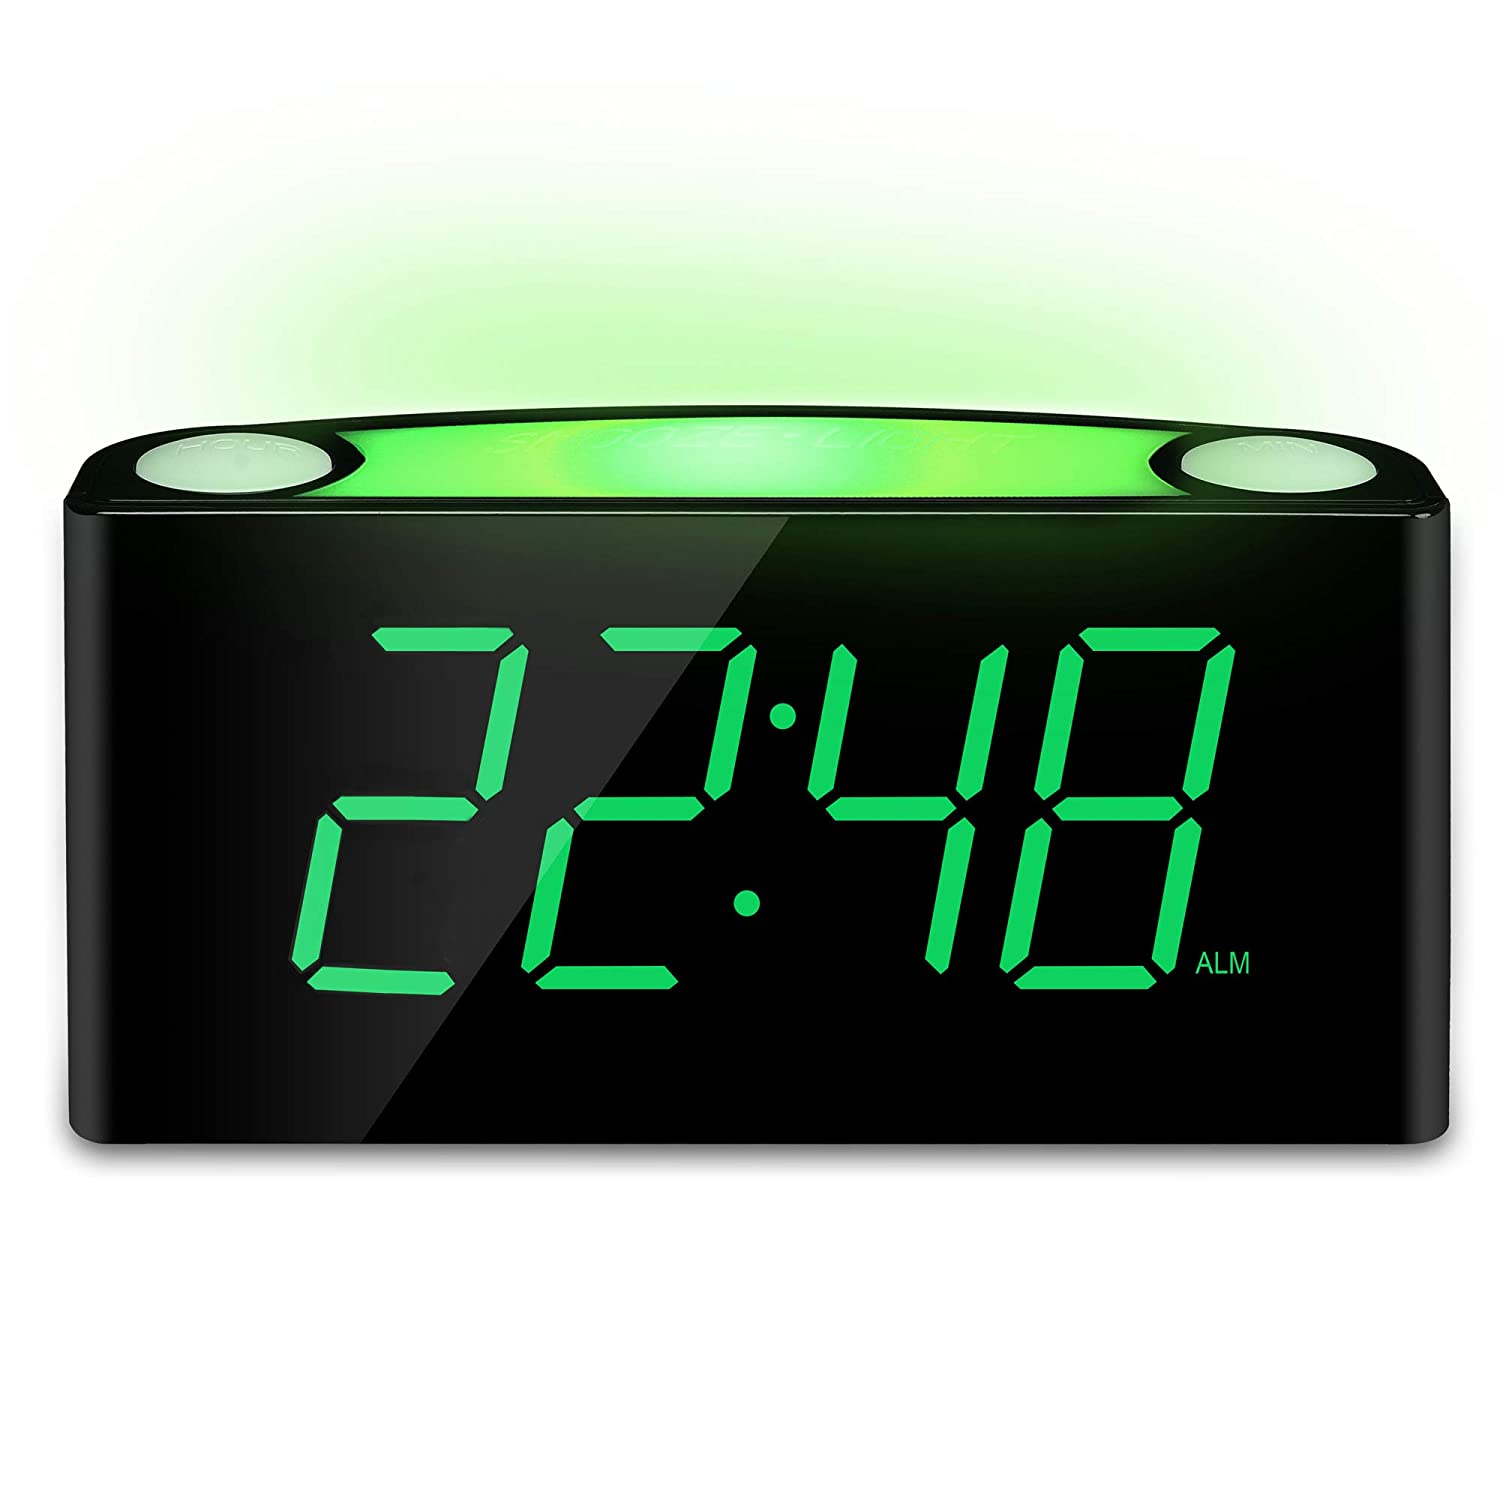 "Mesqool Alarm Clock with 12/24 Hours, 7-Color Night Light, 7"" LED Display with Large Digits, Multi-Level Dimmer, Double USB Chargers, Adjustable Alarm Volume, AC Powered and Battery Backup Settings Mesqool E-commerce Co.ltd MQL-CR1008-White"